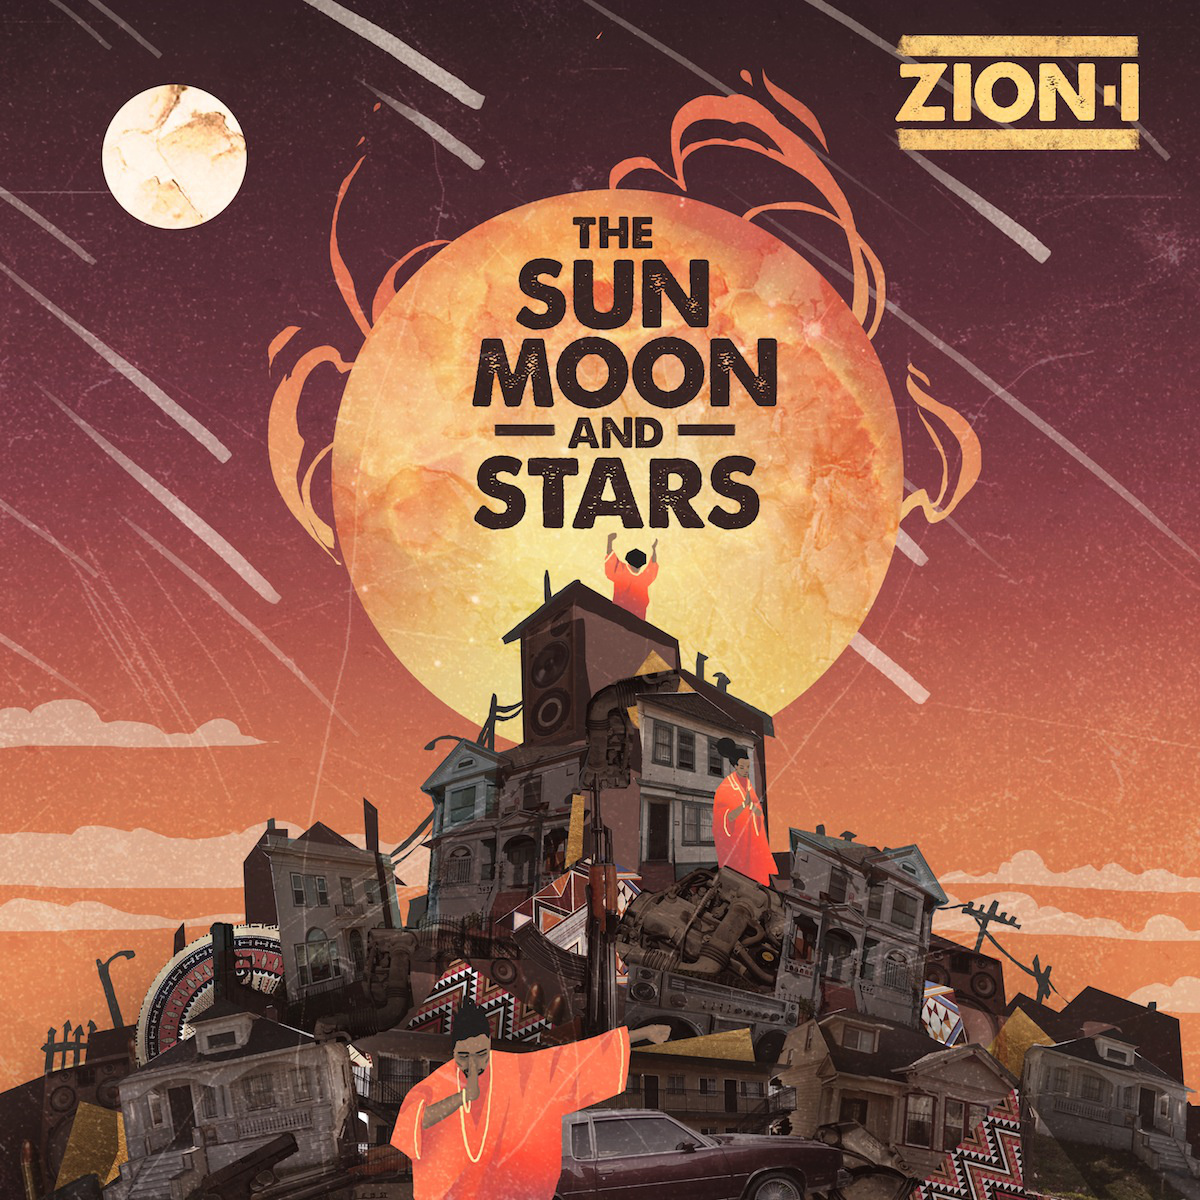 Zion_i_-_the_sun_moon_and_stars